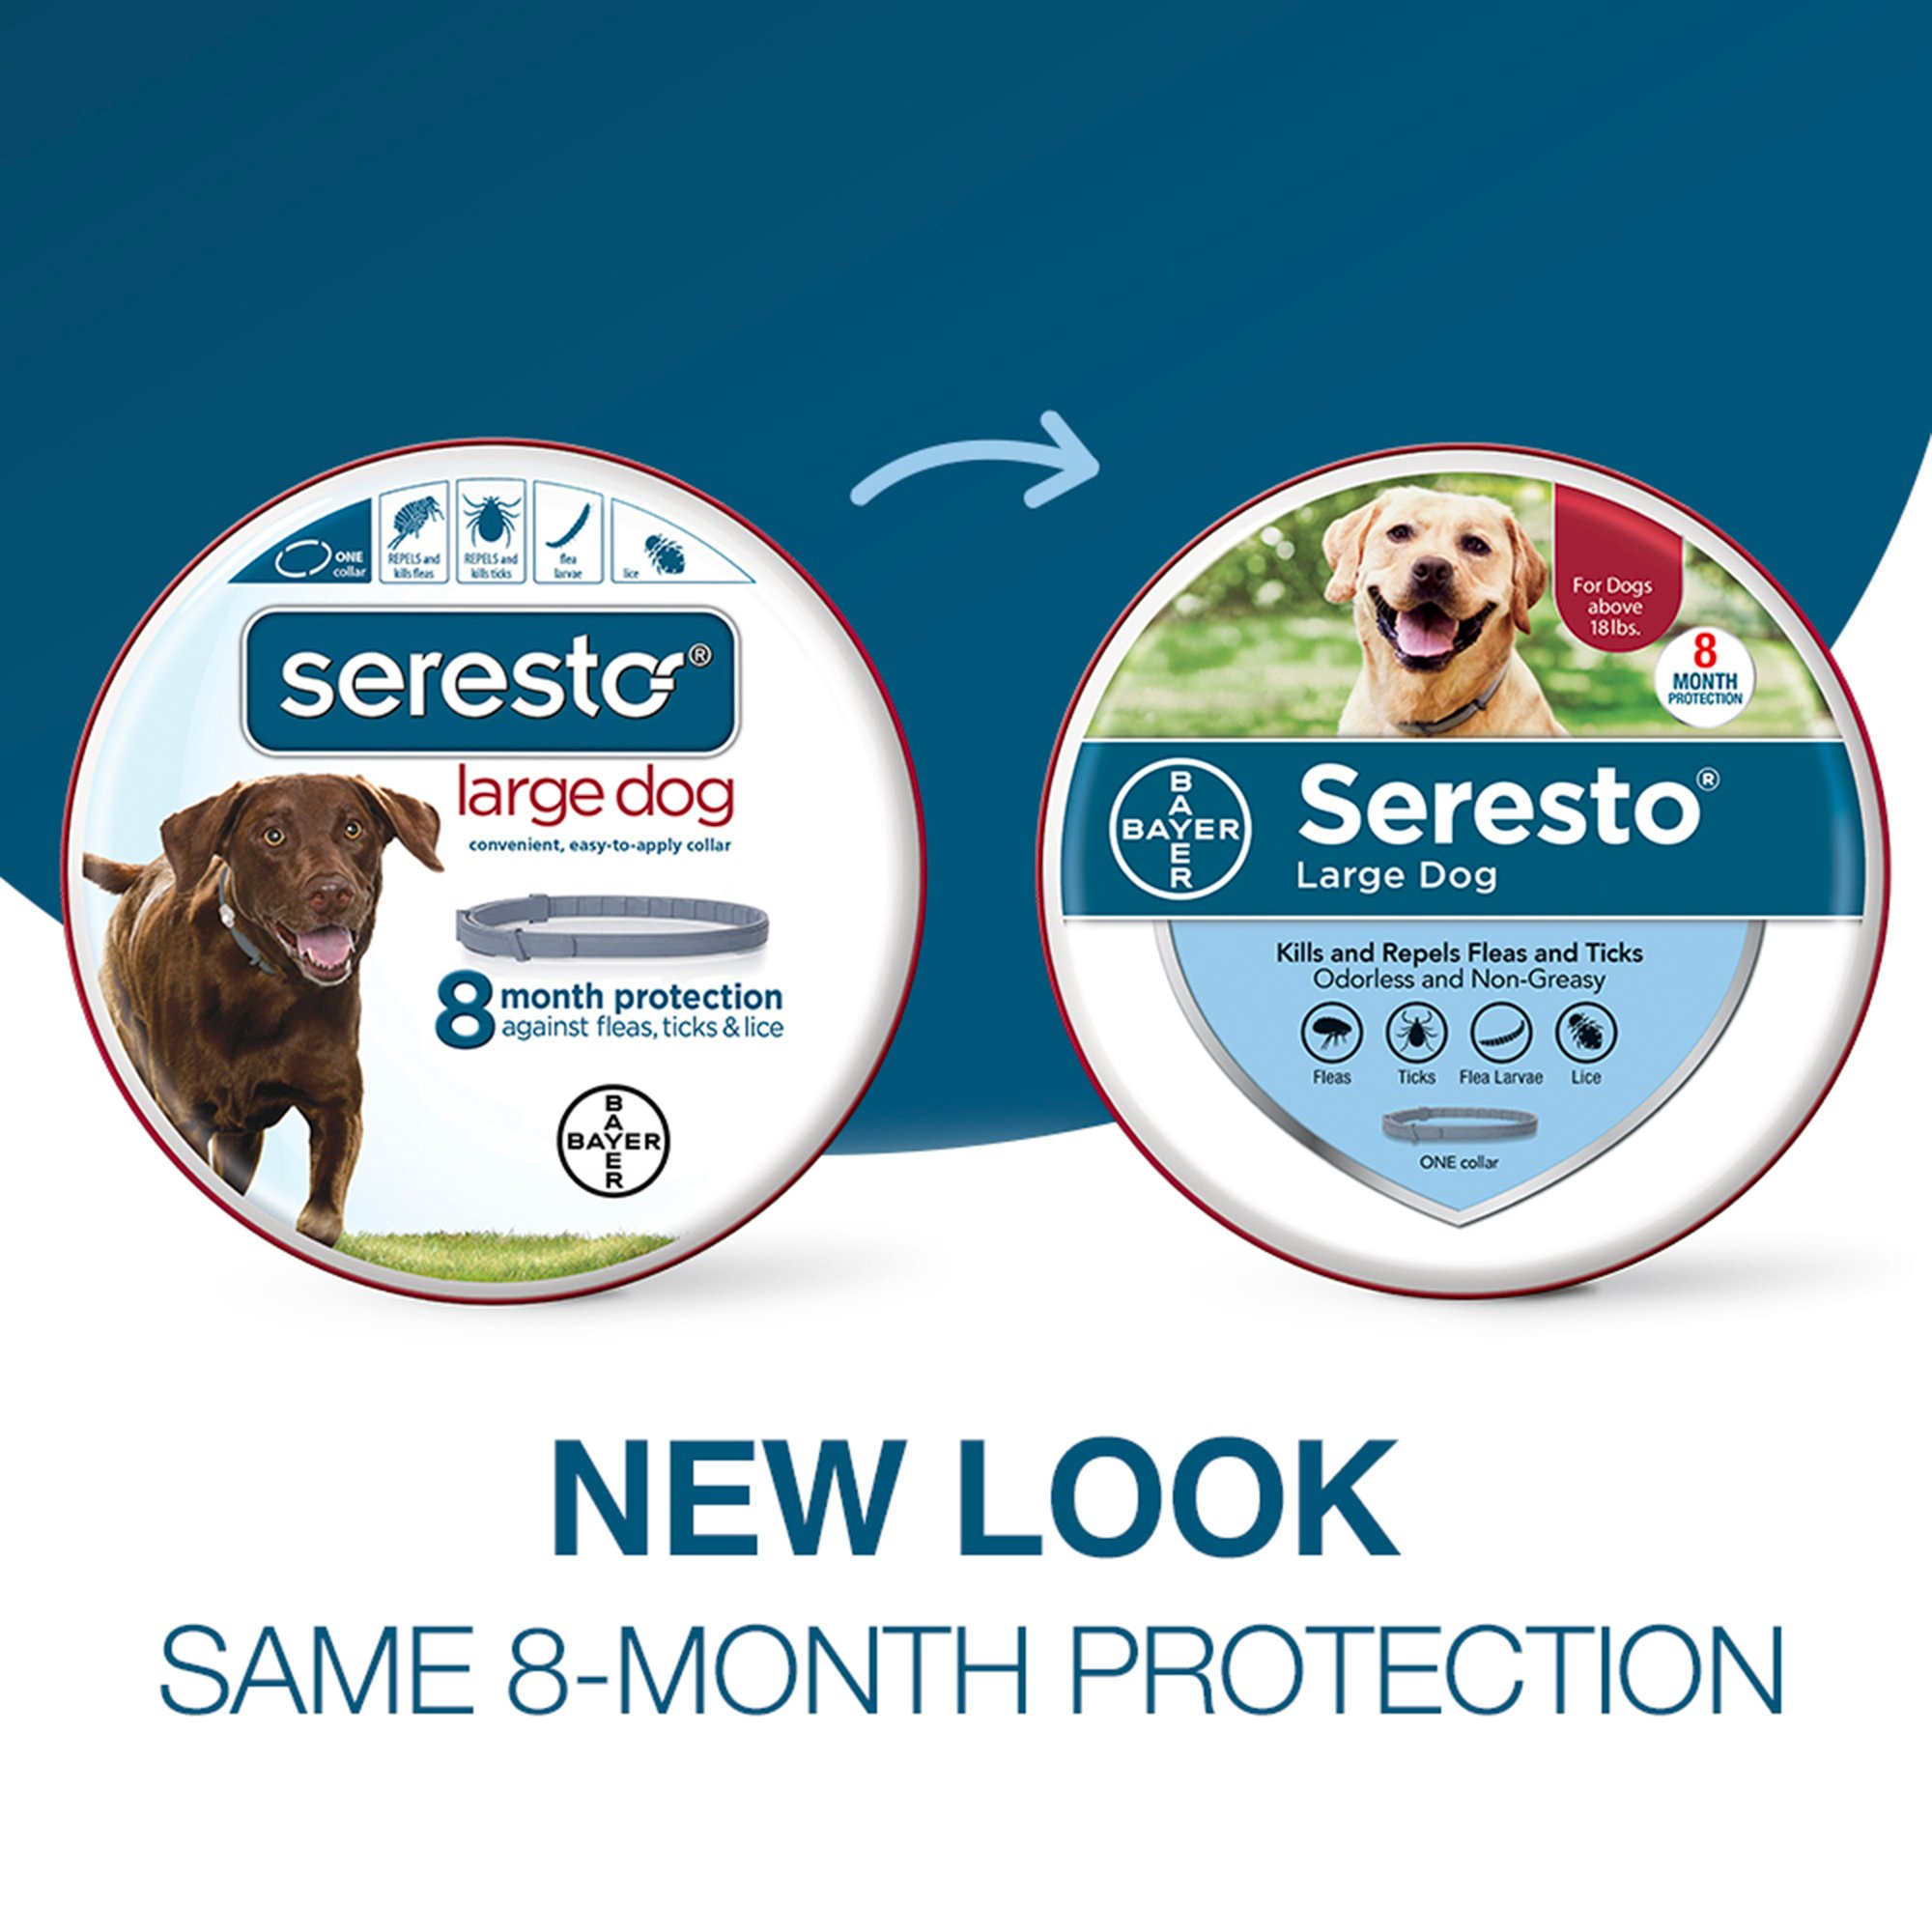 Seresto Dog Collar Petco